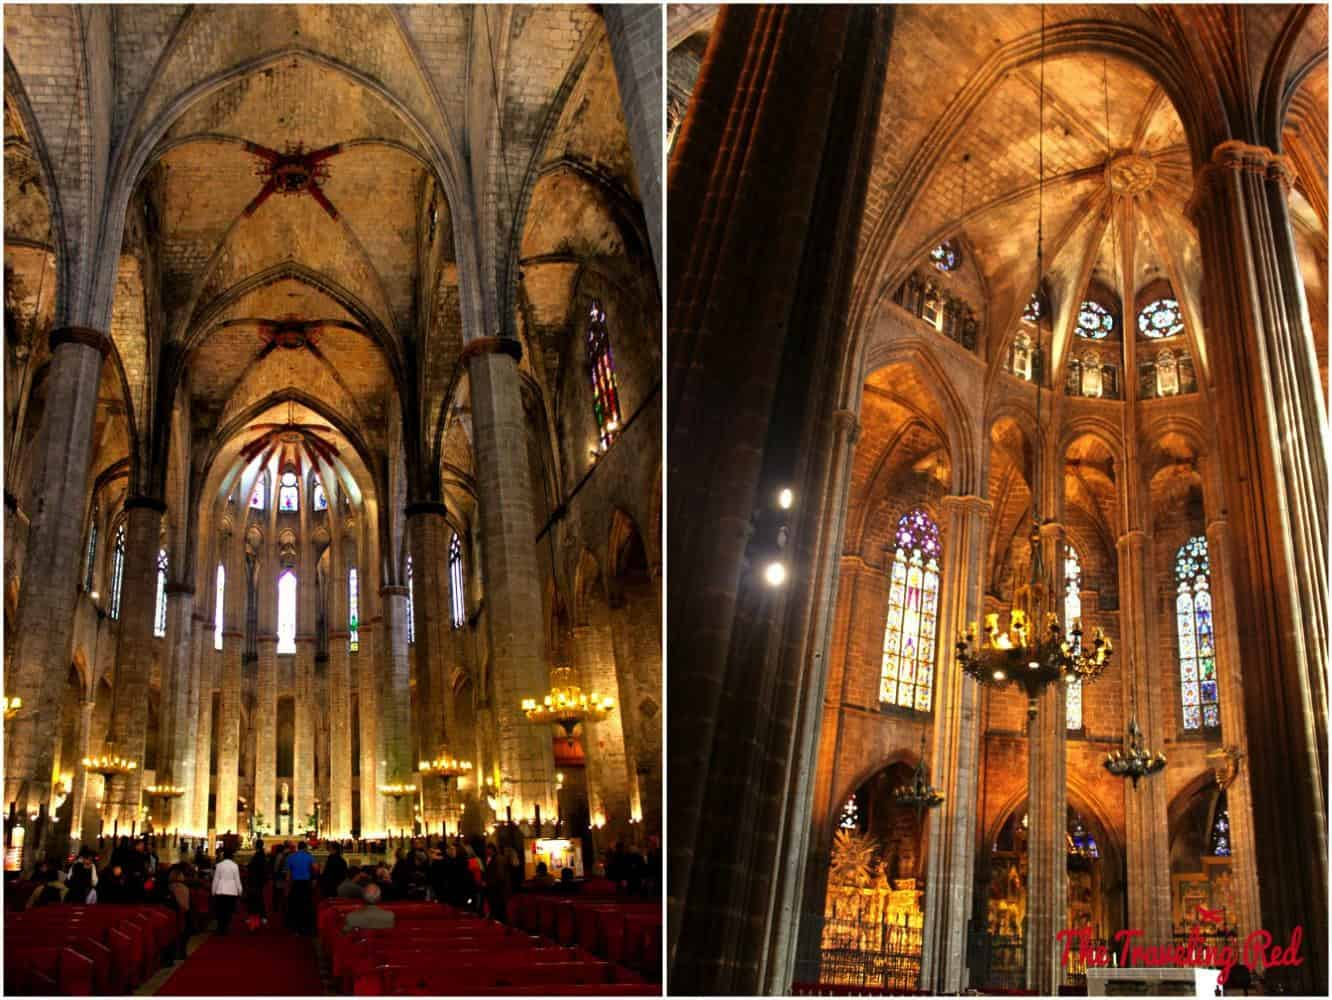 Inside the beautiful Basilica de Santa Maria del Mar in Barcelona, Spain.